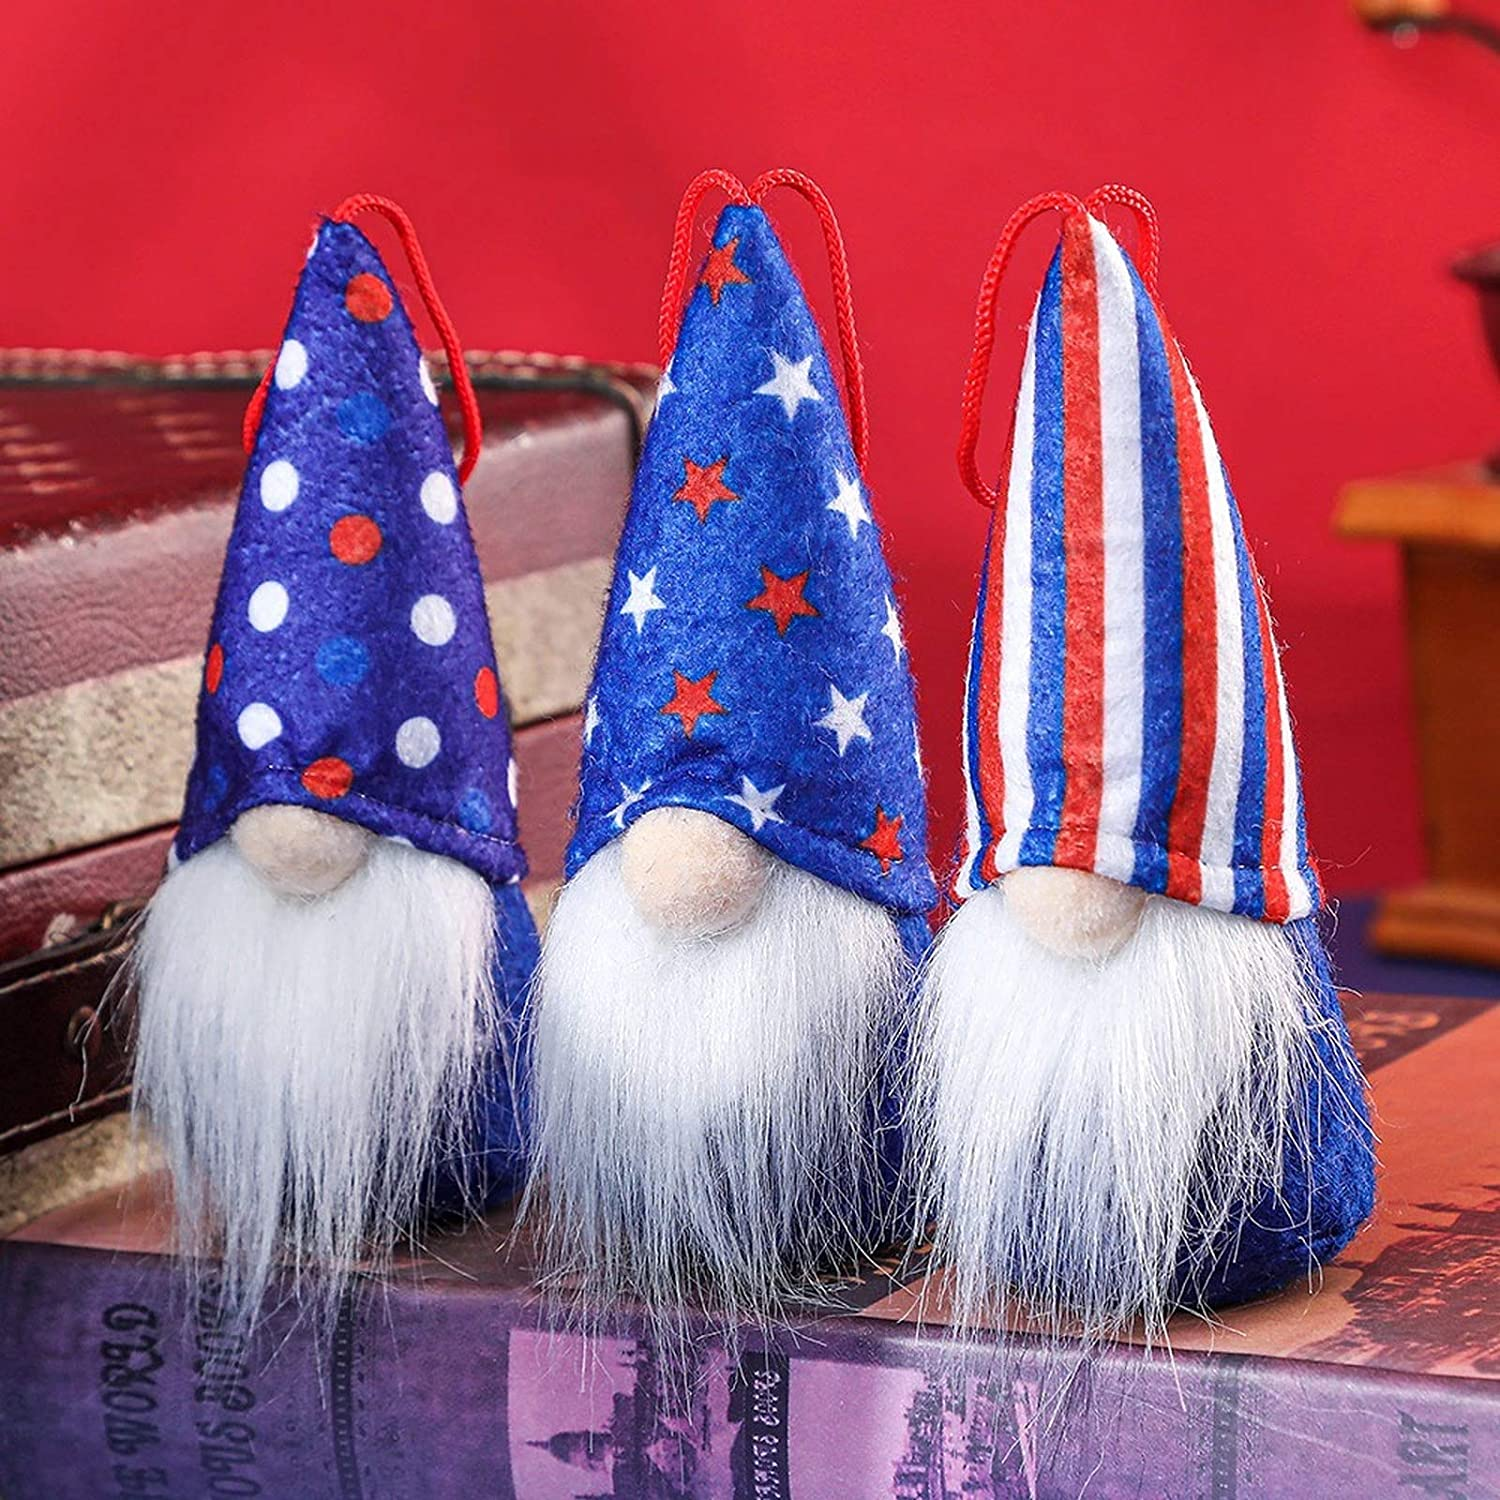 4th of July Gnome Independence Day Hanging Ornament Set of 3, Patriotic Gnome USA Stars and Stripes American Flag Plush Faceless Doll Veterans Day Memorial Day Gift Uncle Sam Tomte Elf Home Decor